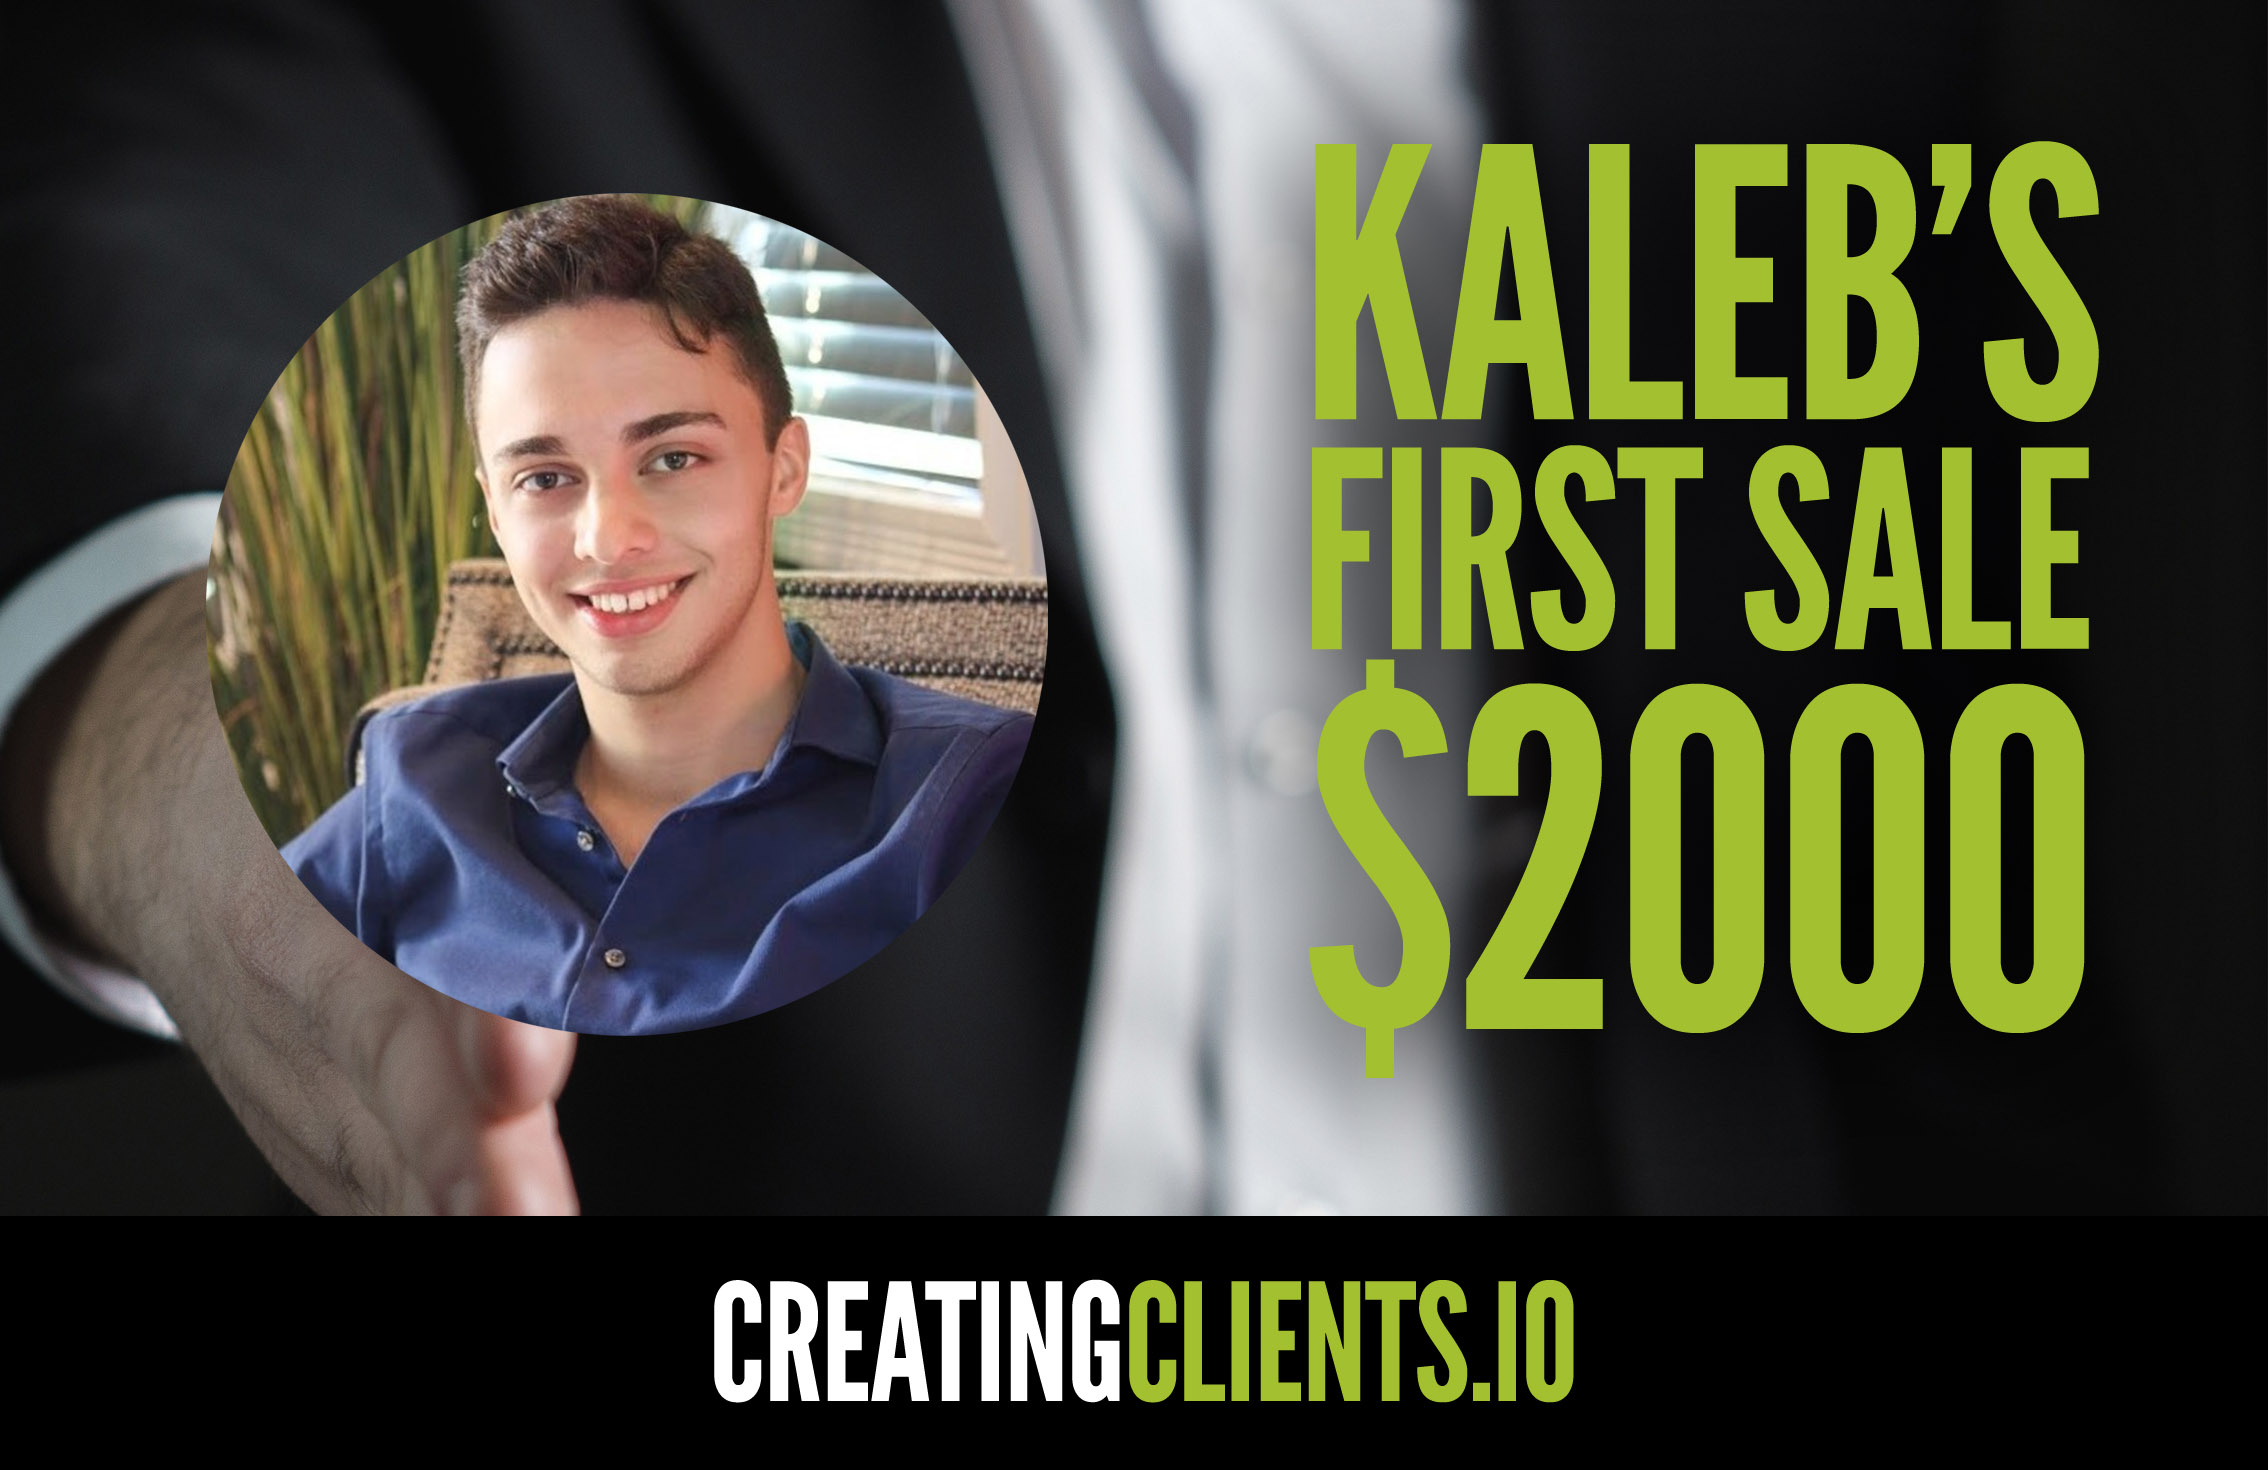 Kaleb's First Sale – $2000